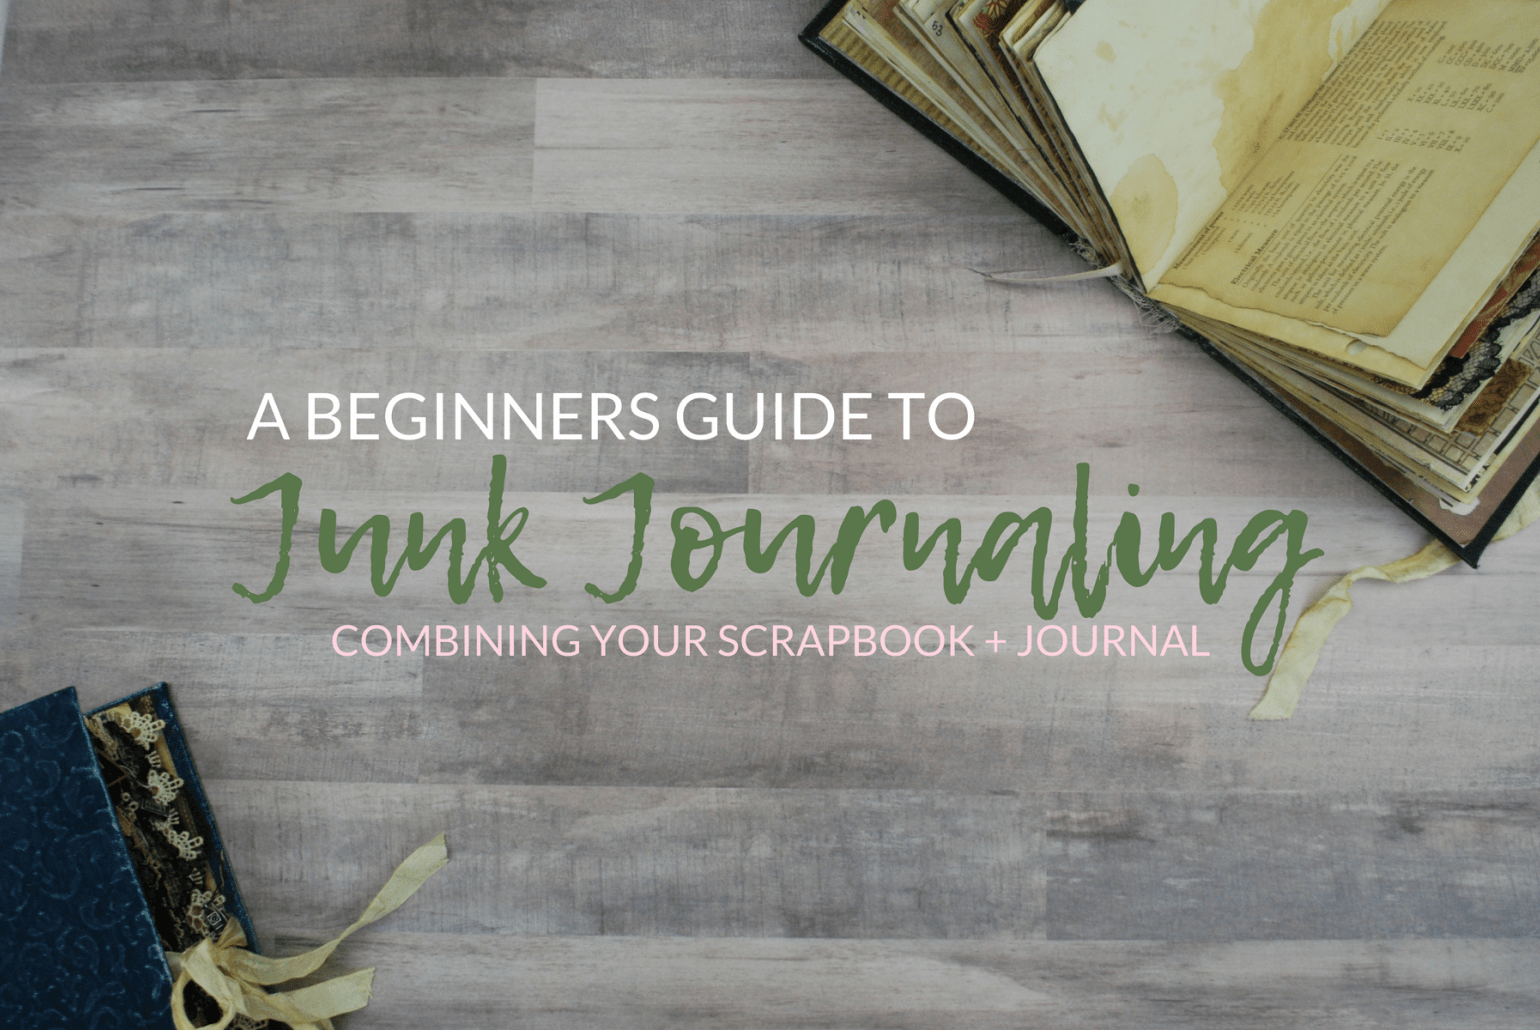 A Beginners Guide to Junk Journaling